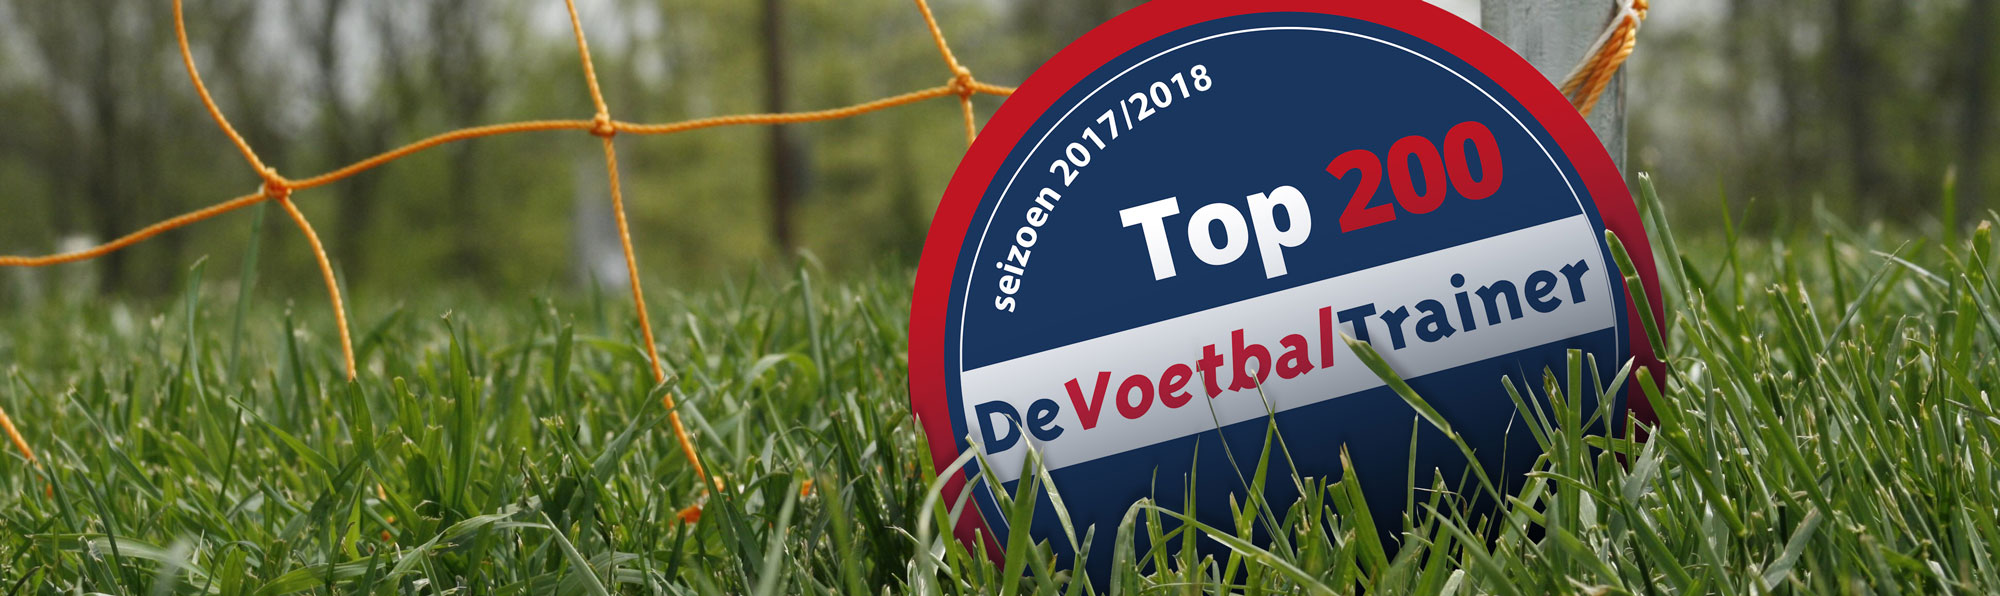 Top 200 van hoogstspelende amateurclubs in Nederland